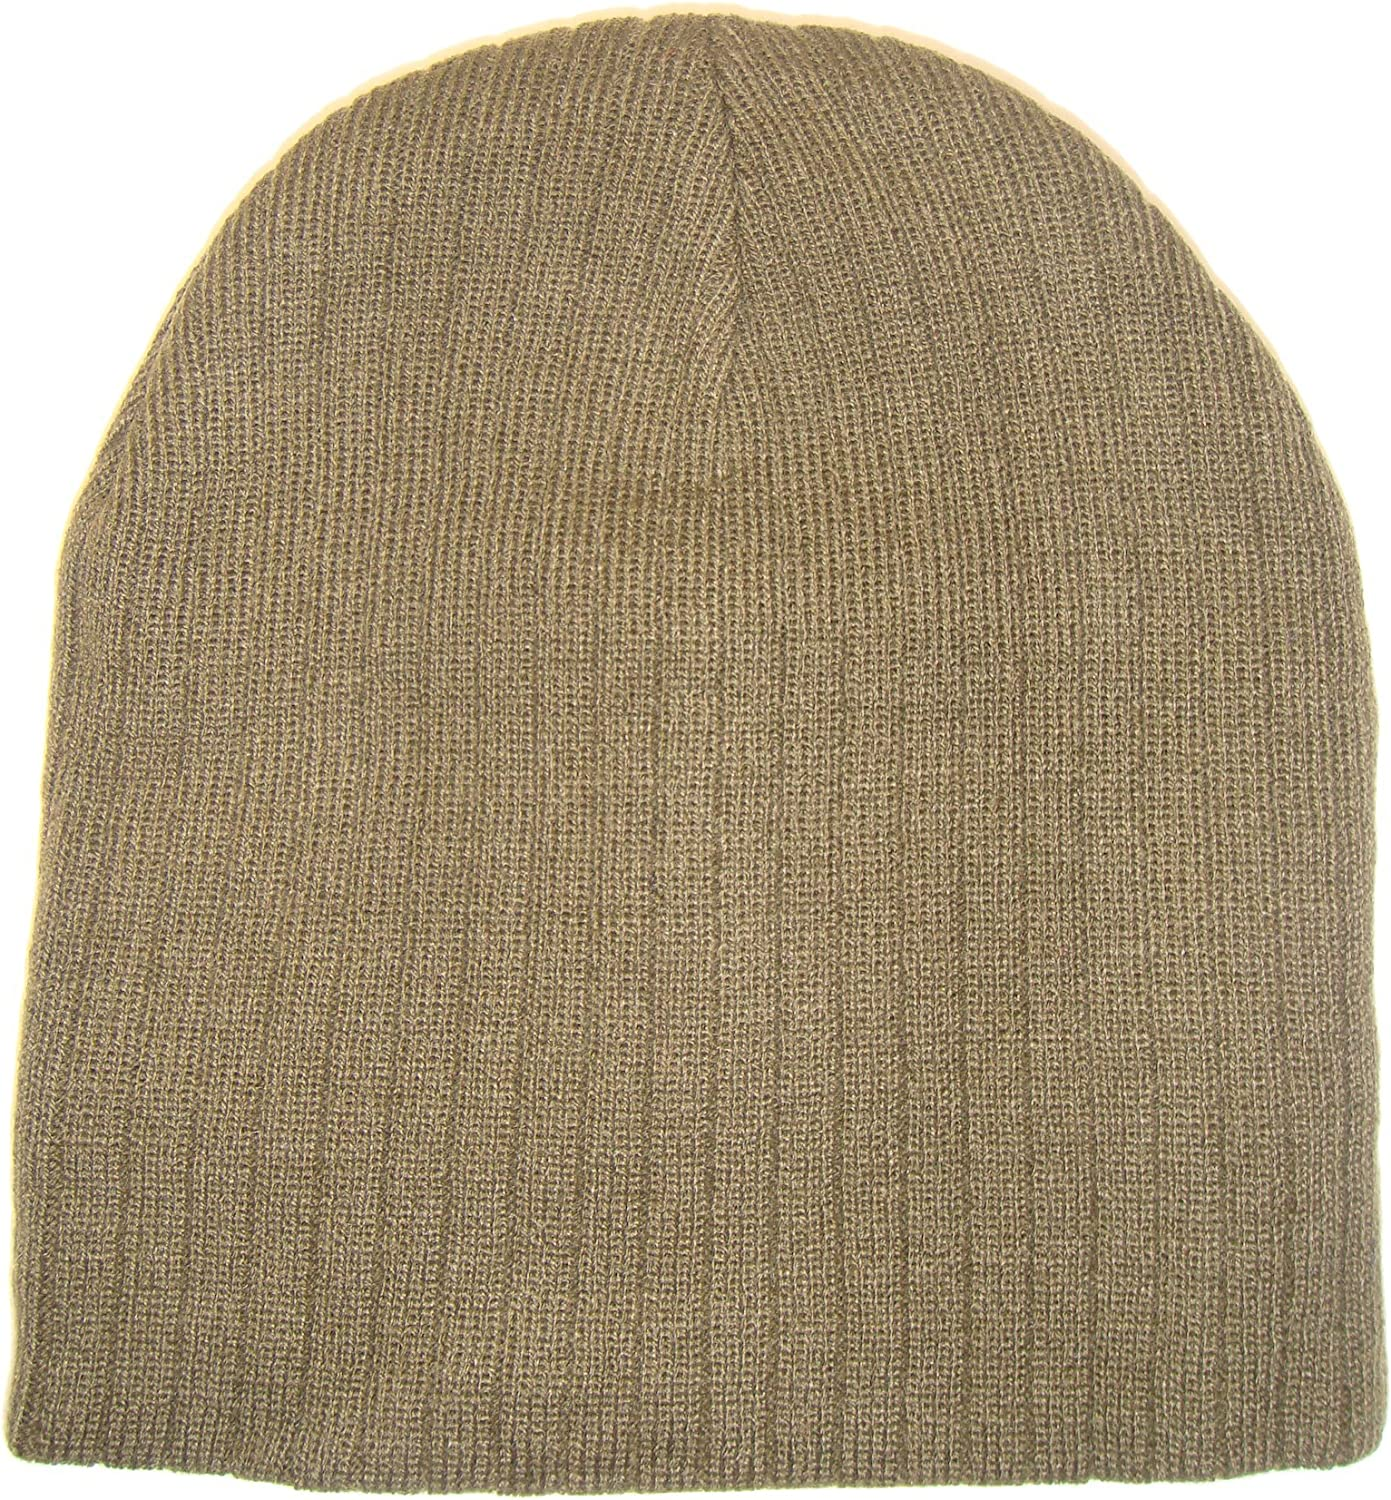 THS Ribbed Style Knit Short Ski Beanie Cap One Size, Khaki Tan